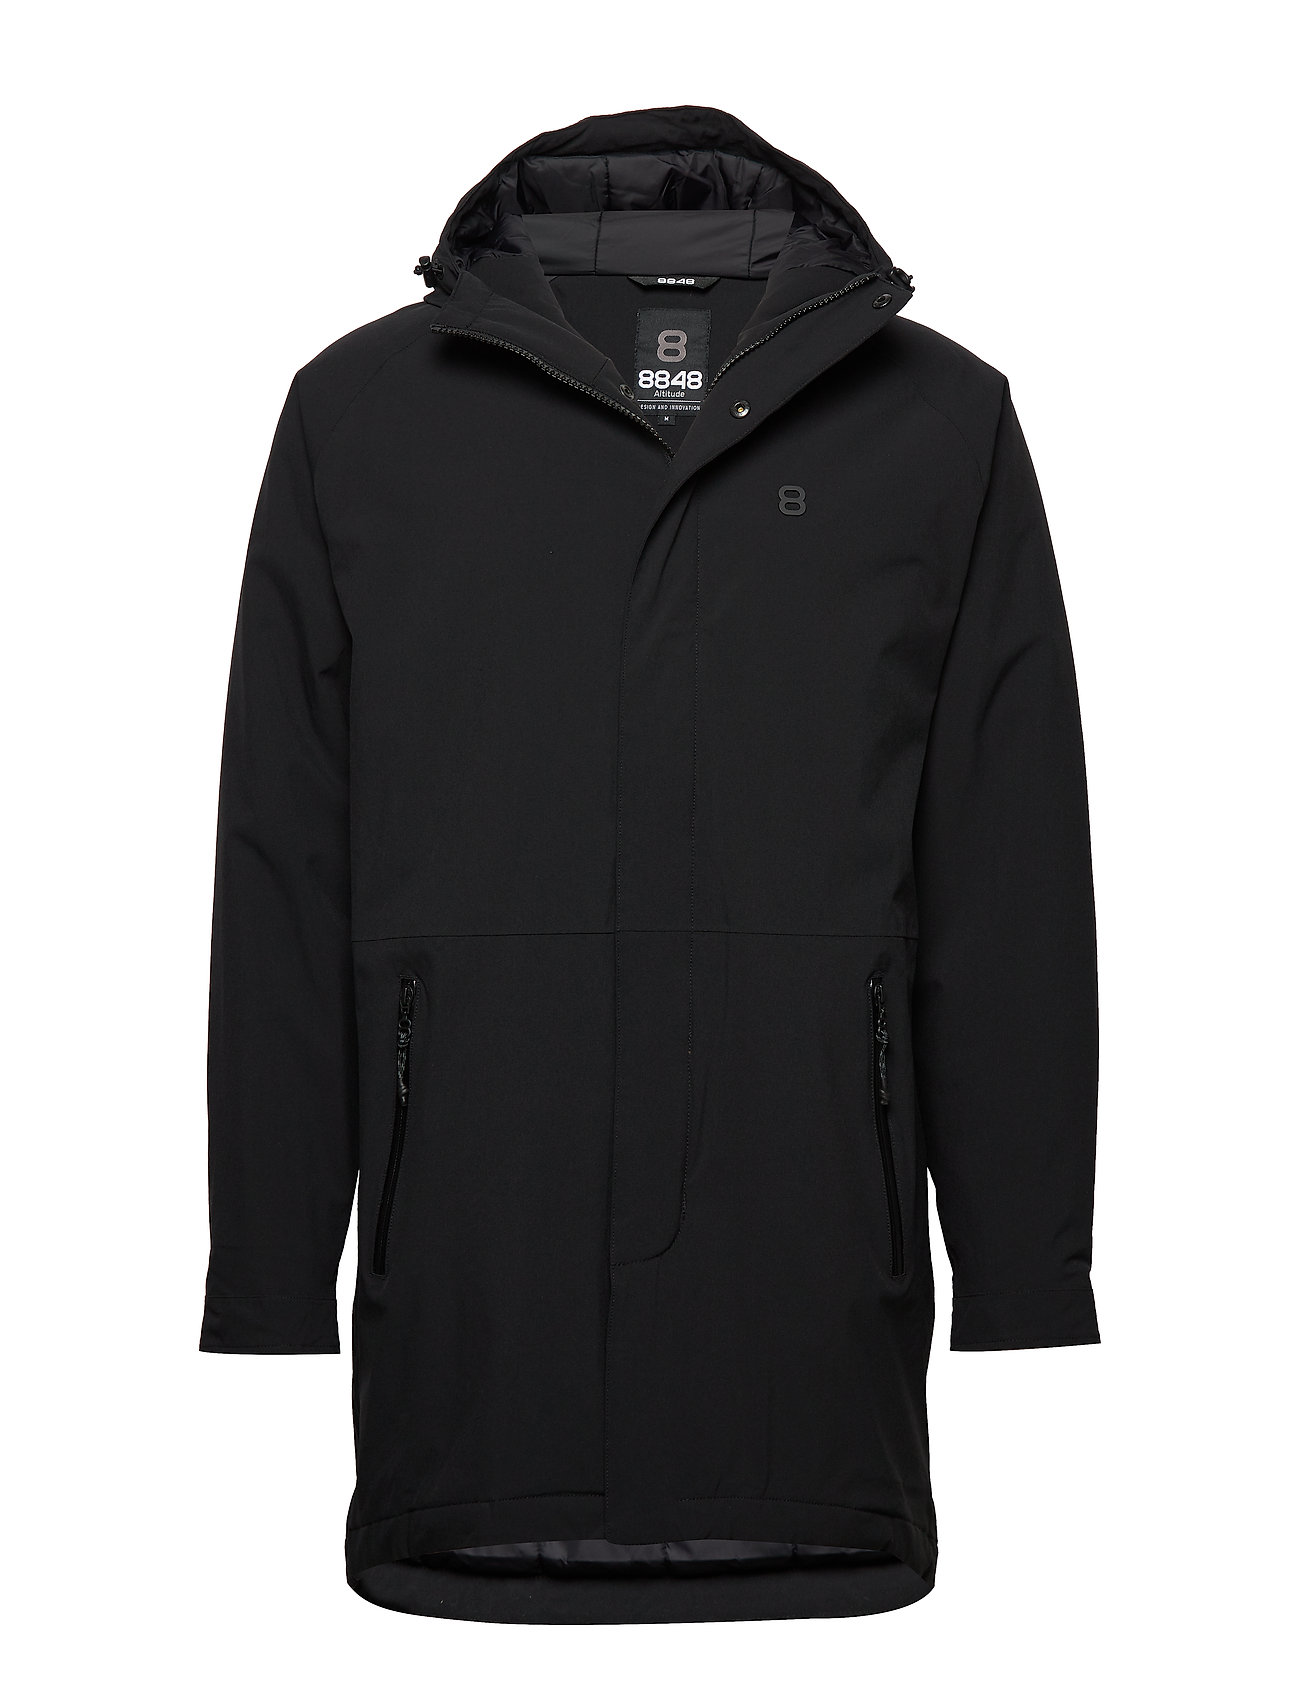 8848 Altitude Heat Grip Coat - BLACK